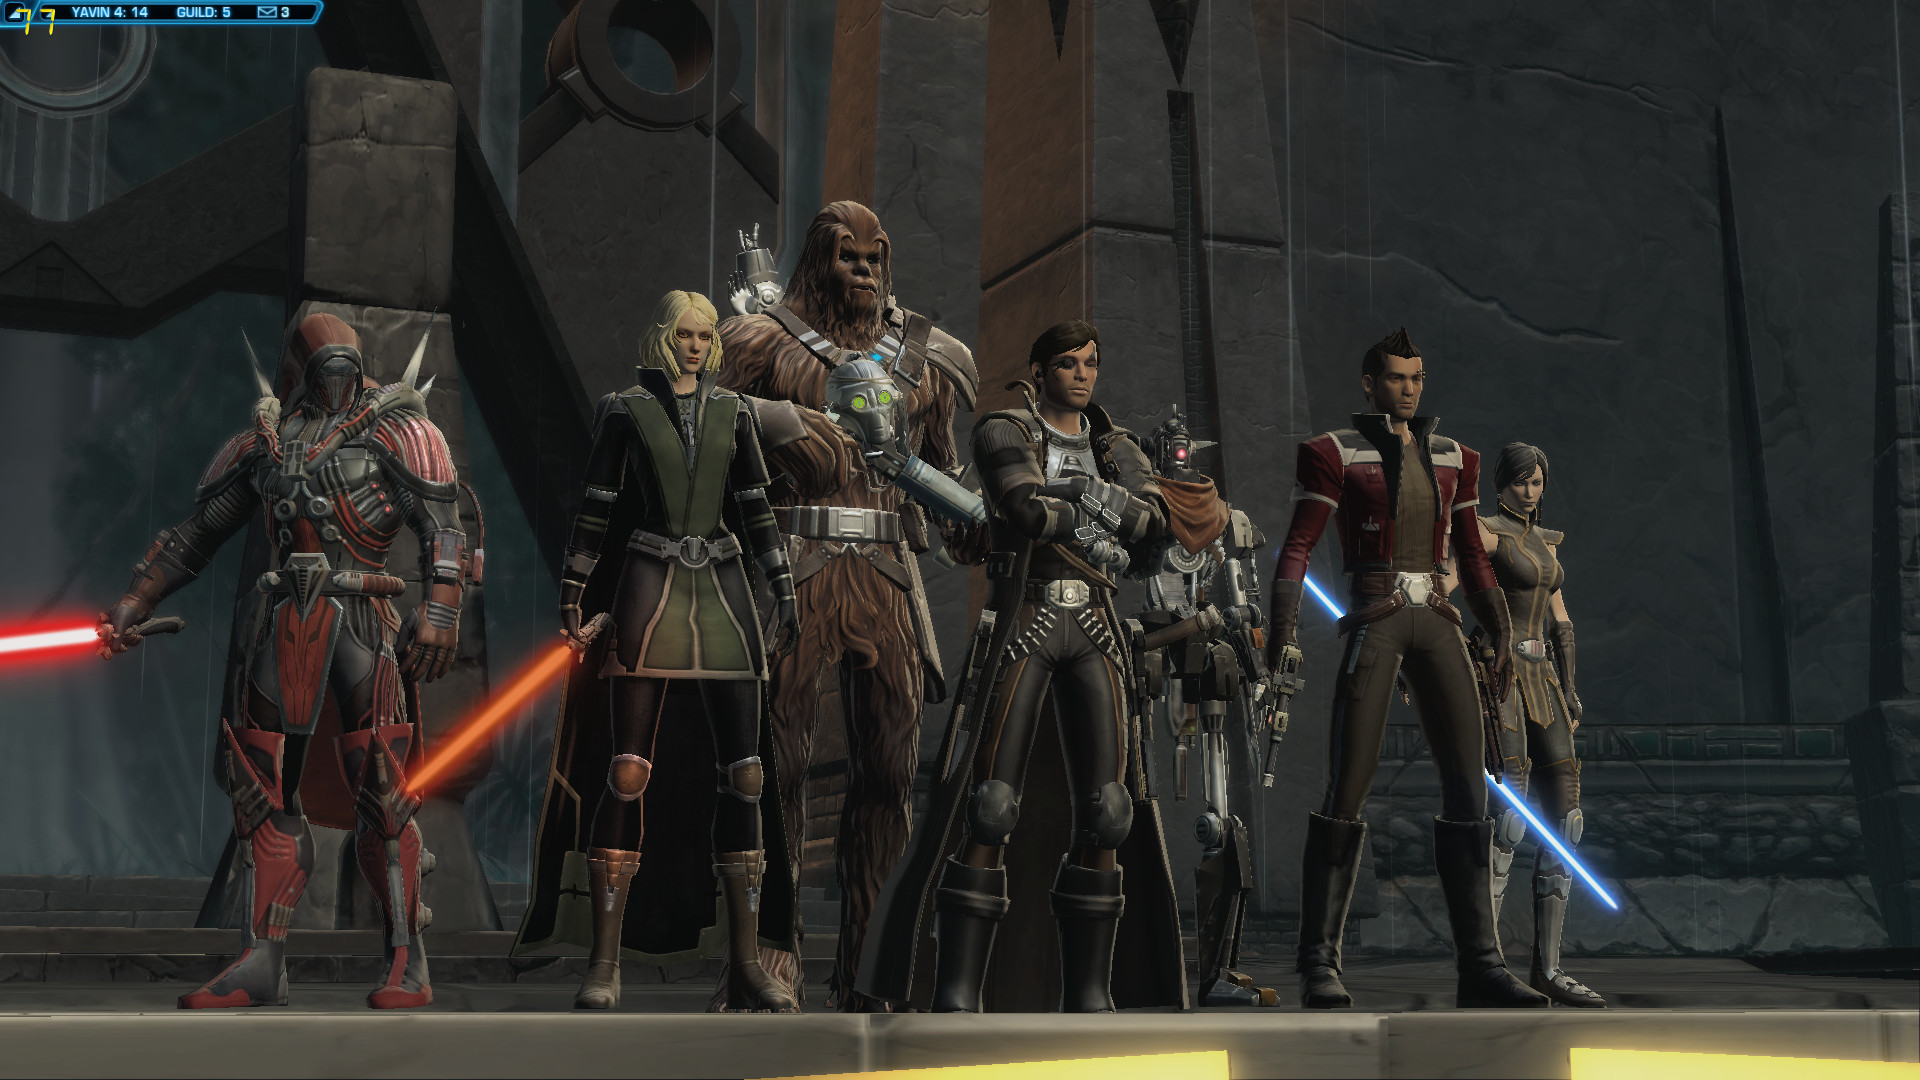 Res: 1920x1080, ... Swtor: Captain Vergil and the Coalition by DanteDT34